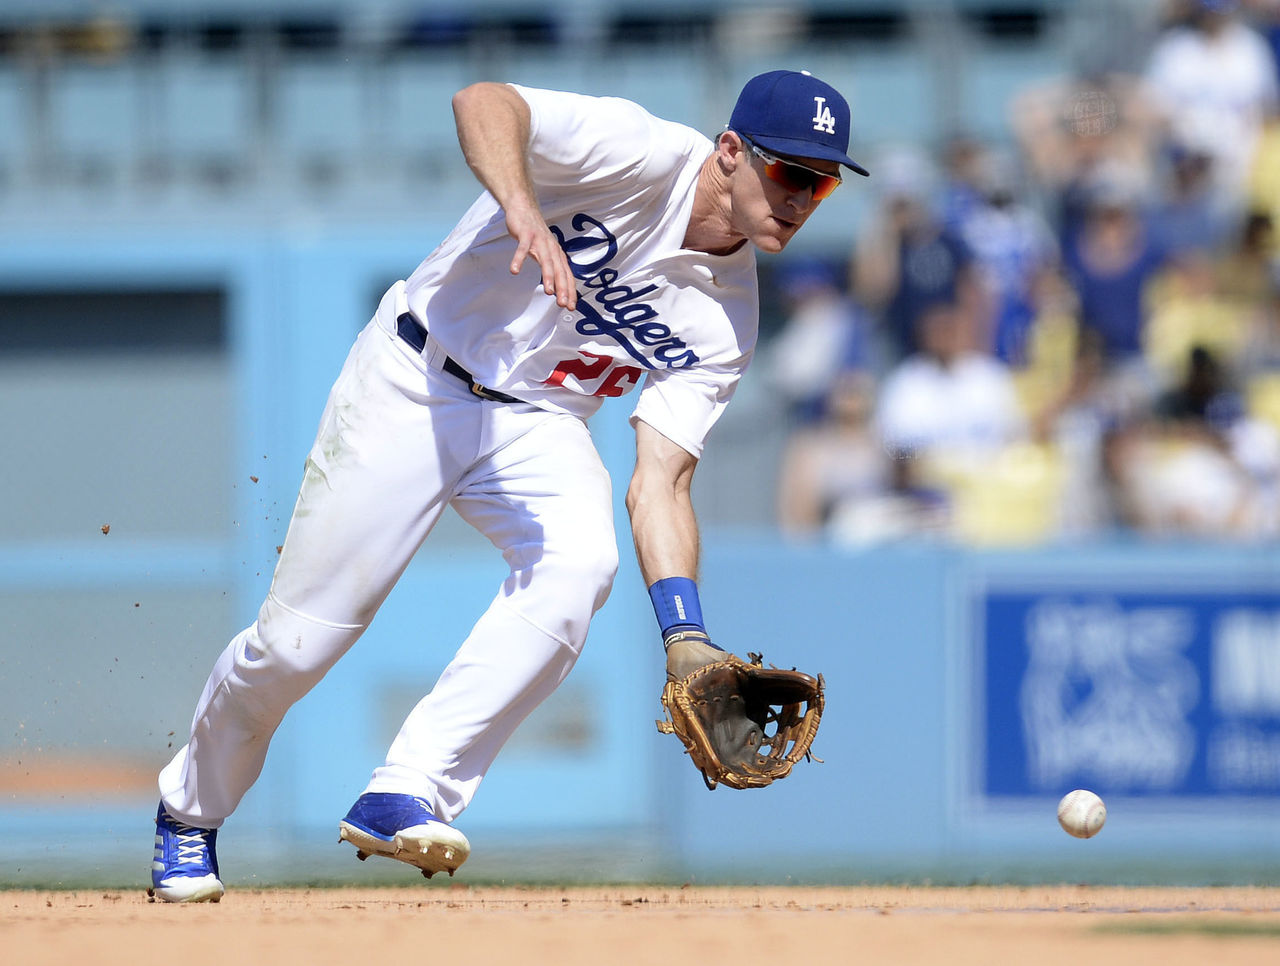 Cropped 2017 08 13t232338z 347526567 nocid rtrmadp 3 mlb san diego padres at los angeles dodgers